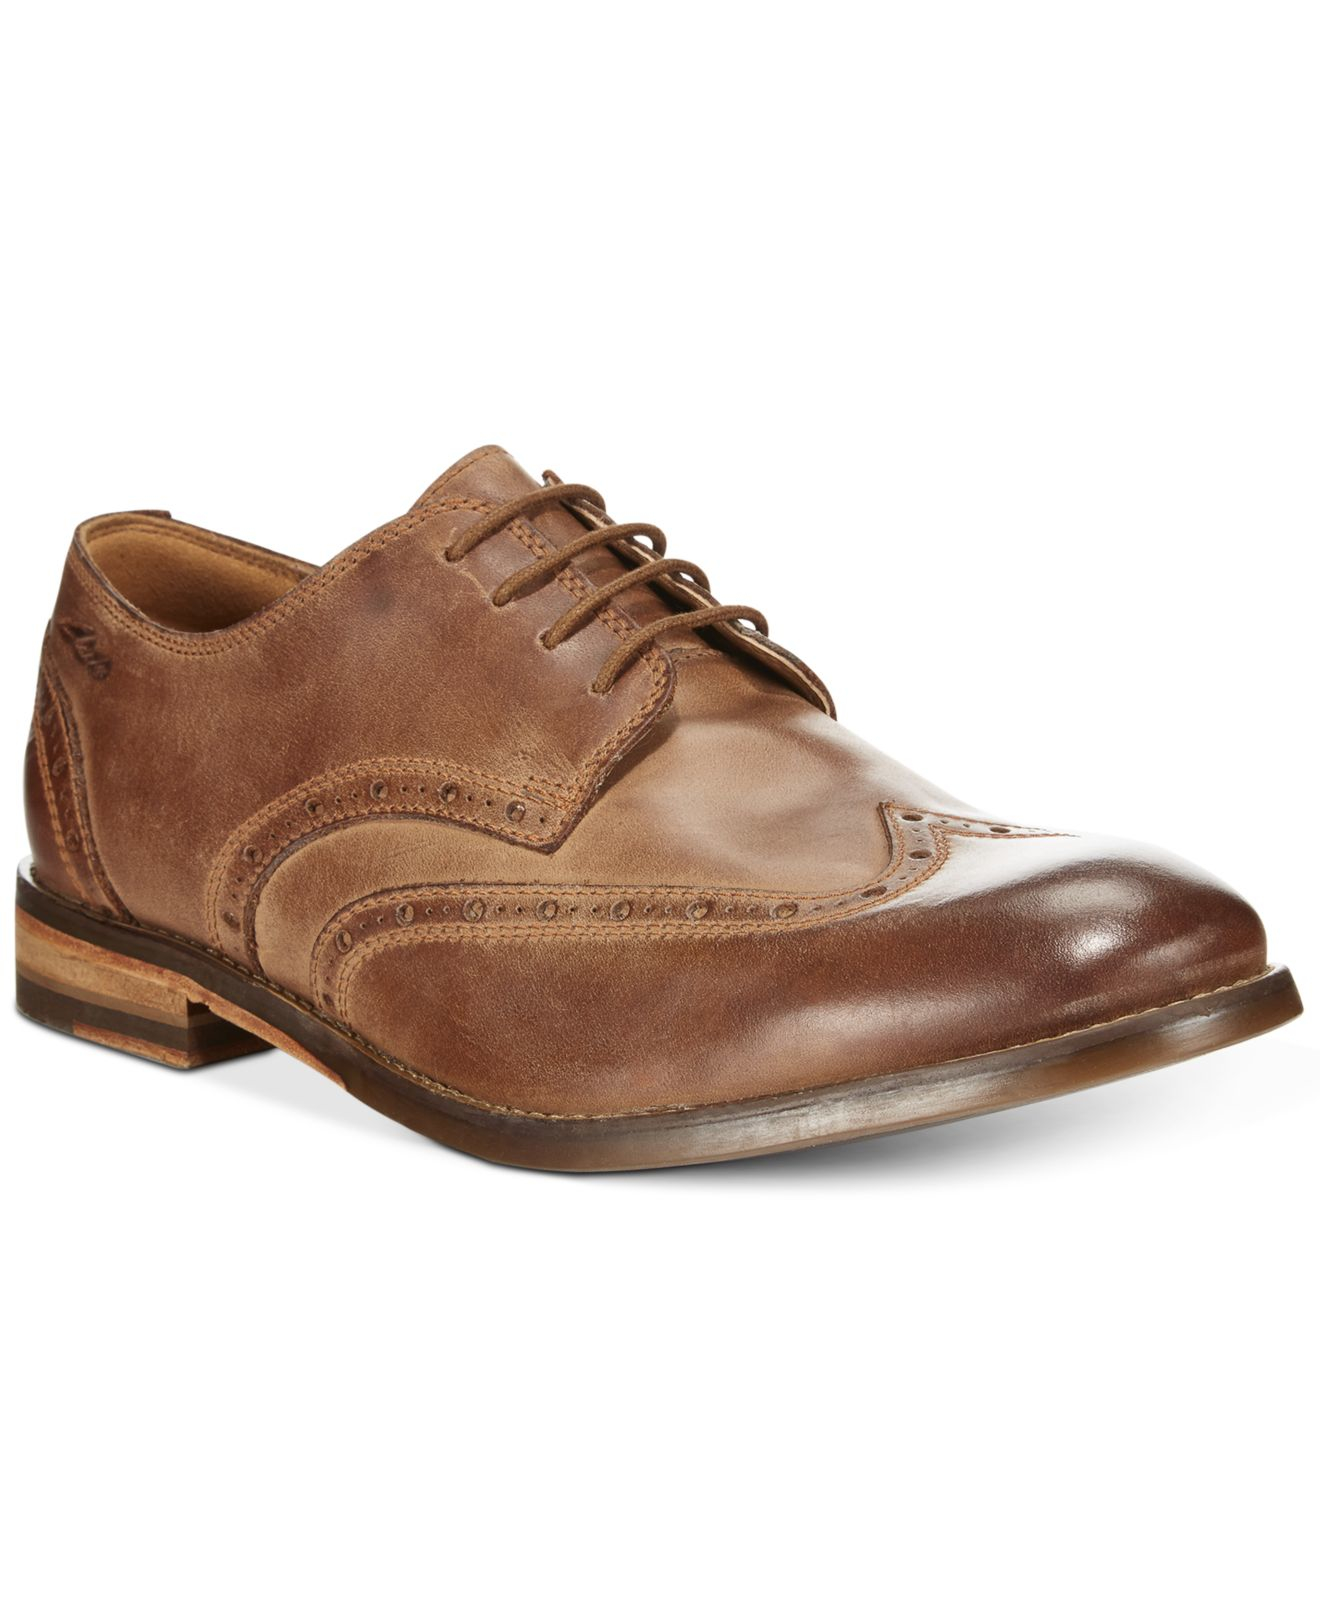 811a9542c176 Lyst - Clarks Men s 1825 Tor Collection Exton Brogue Wing Tip Lace ...